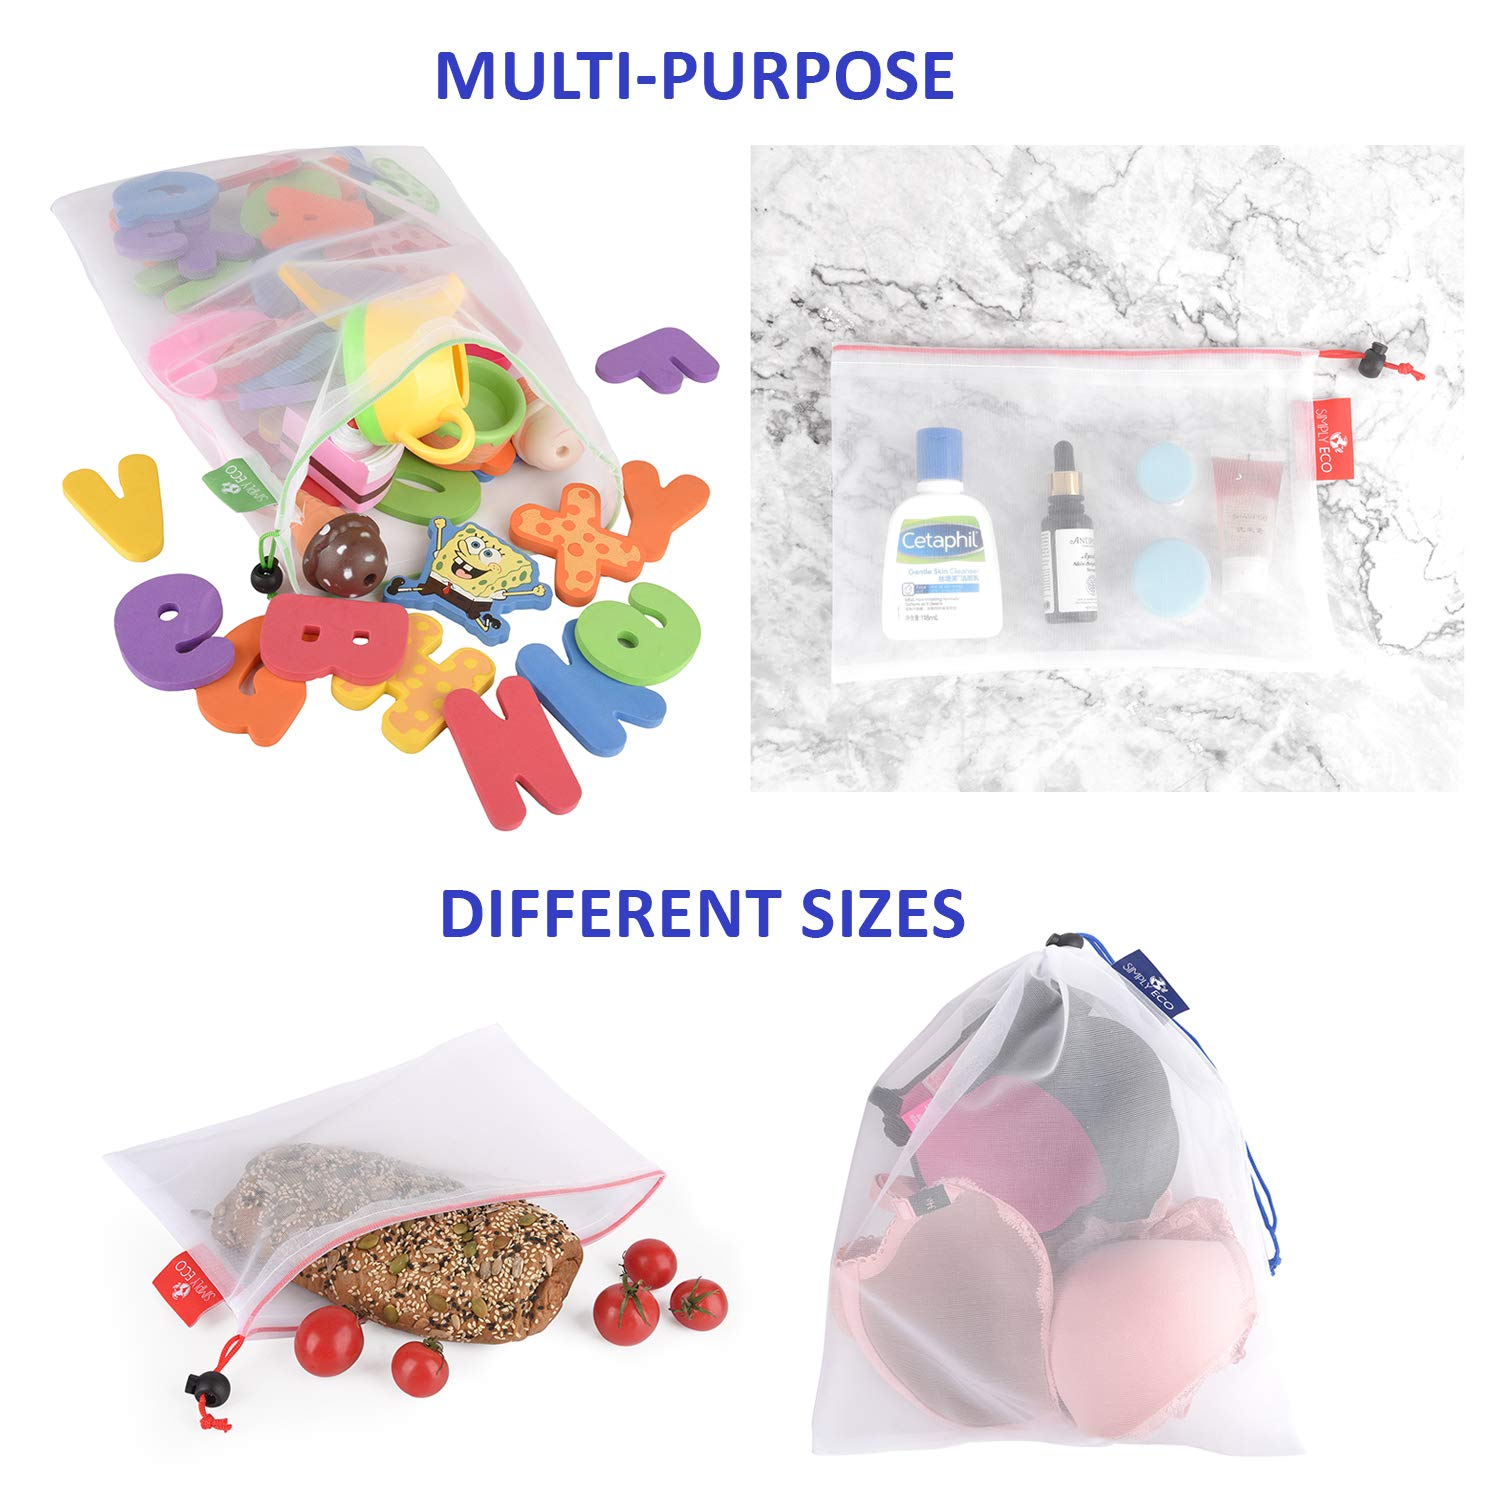 Simply Eco 9 Reusable Produce Bags with Weight /& Color-coded tags.